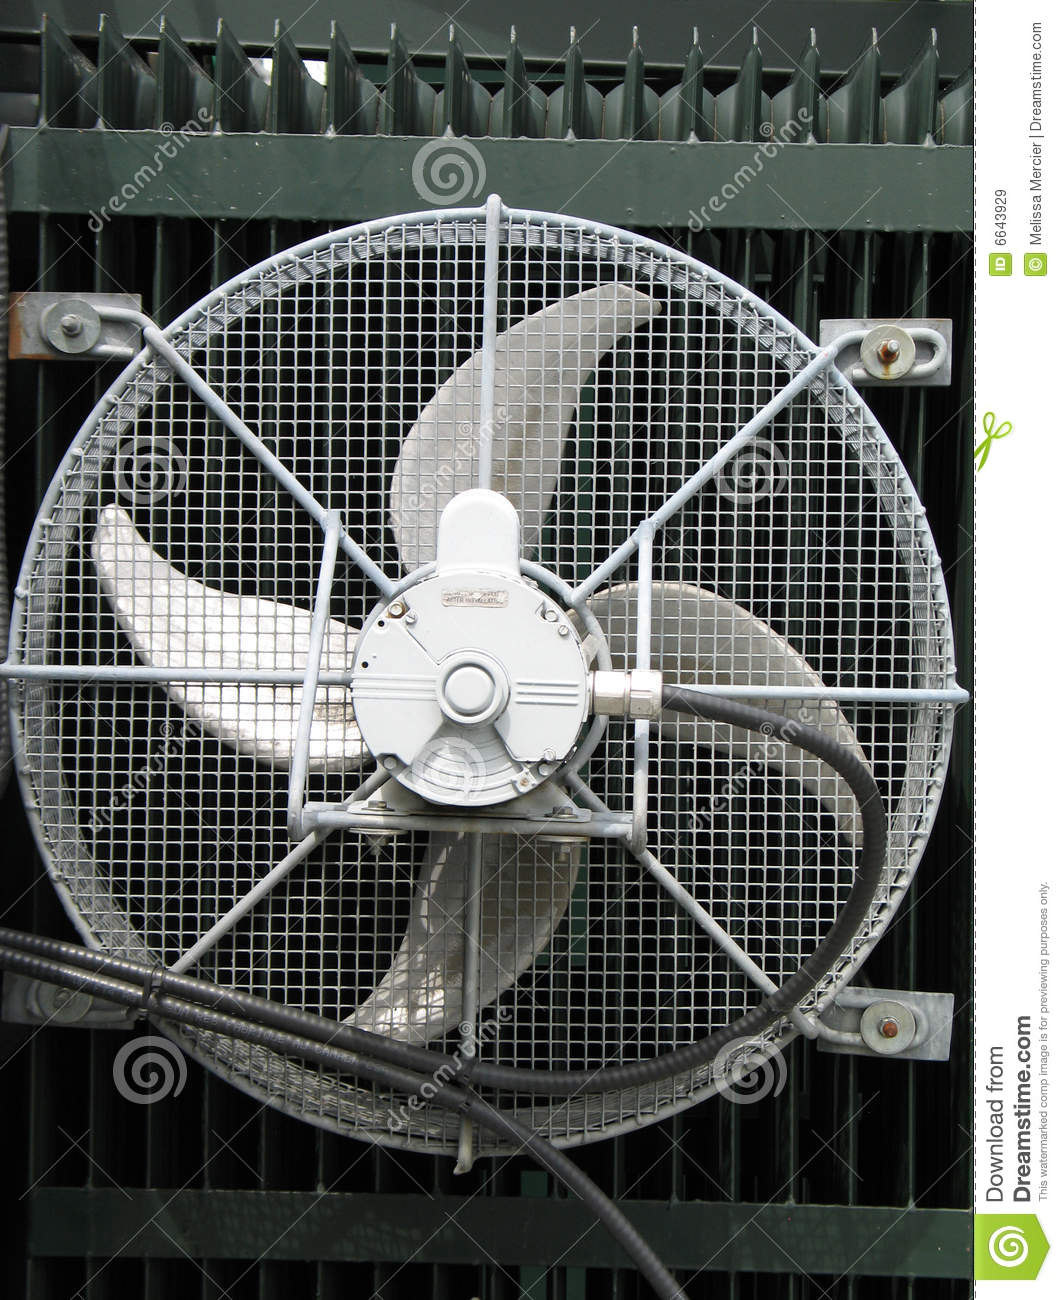 Large Industrial Fans : Huge industrial fan imgkid the image kid has it